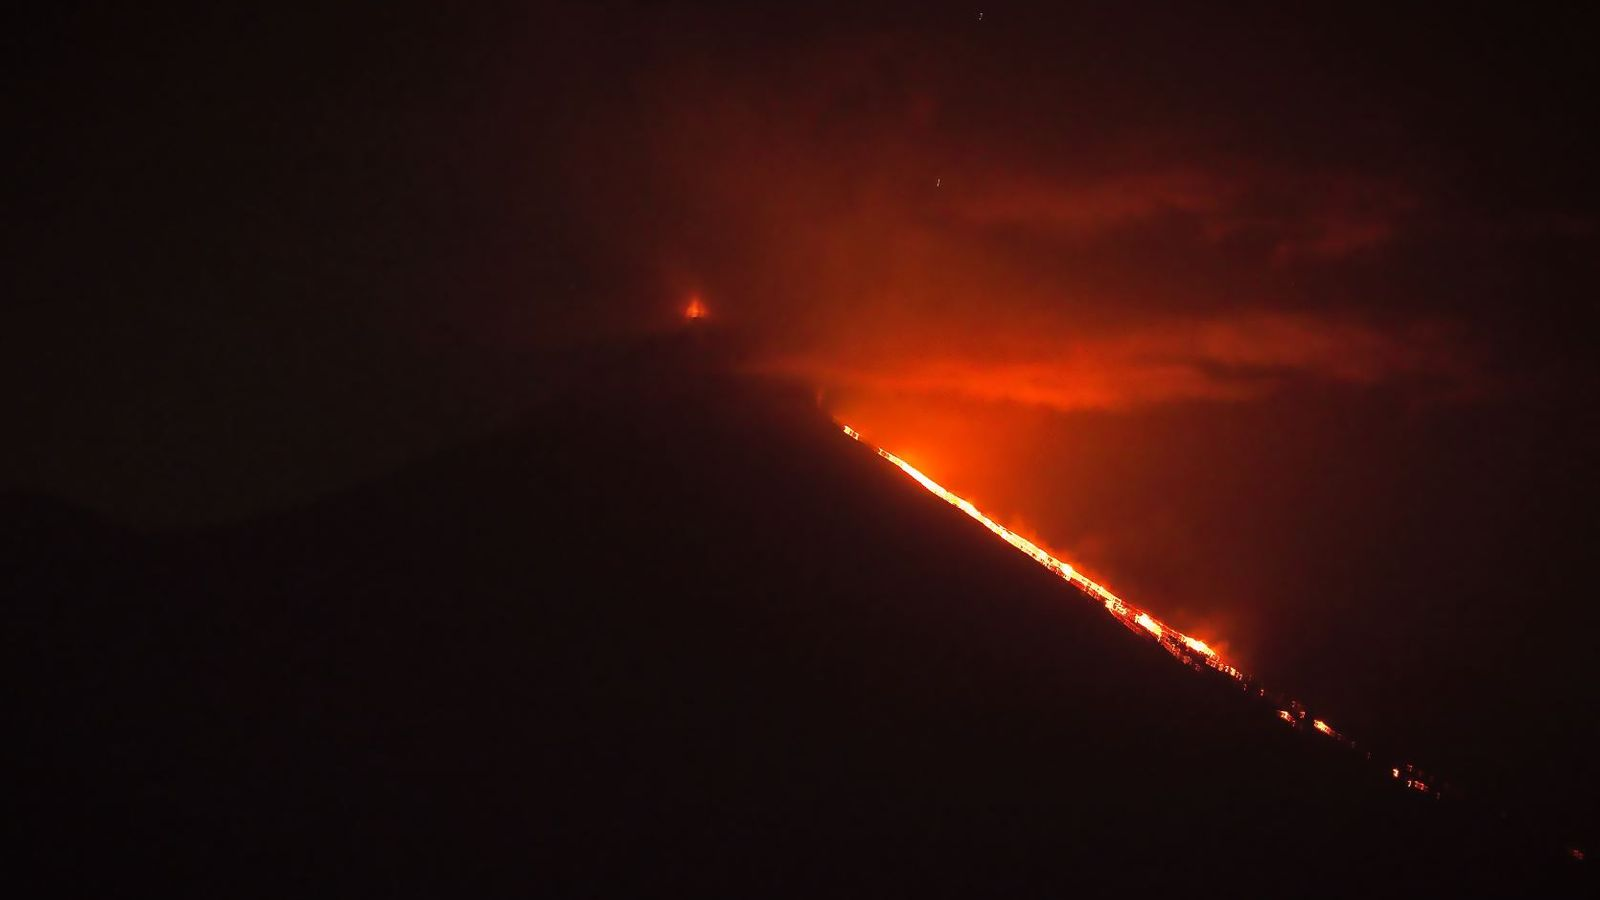 Guatemala: There's nowhere to hide - hundreds of thousands live in the shadow of three erupting volcanoes